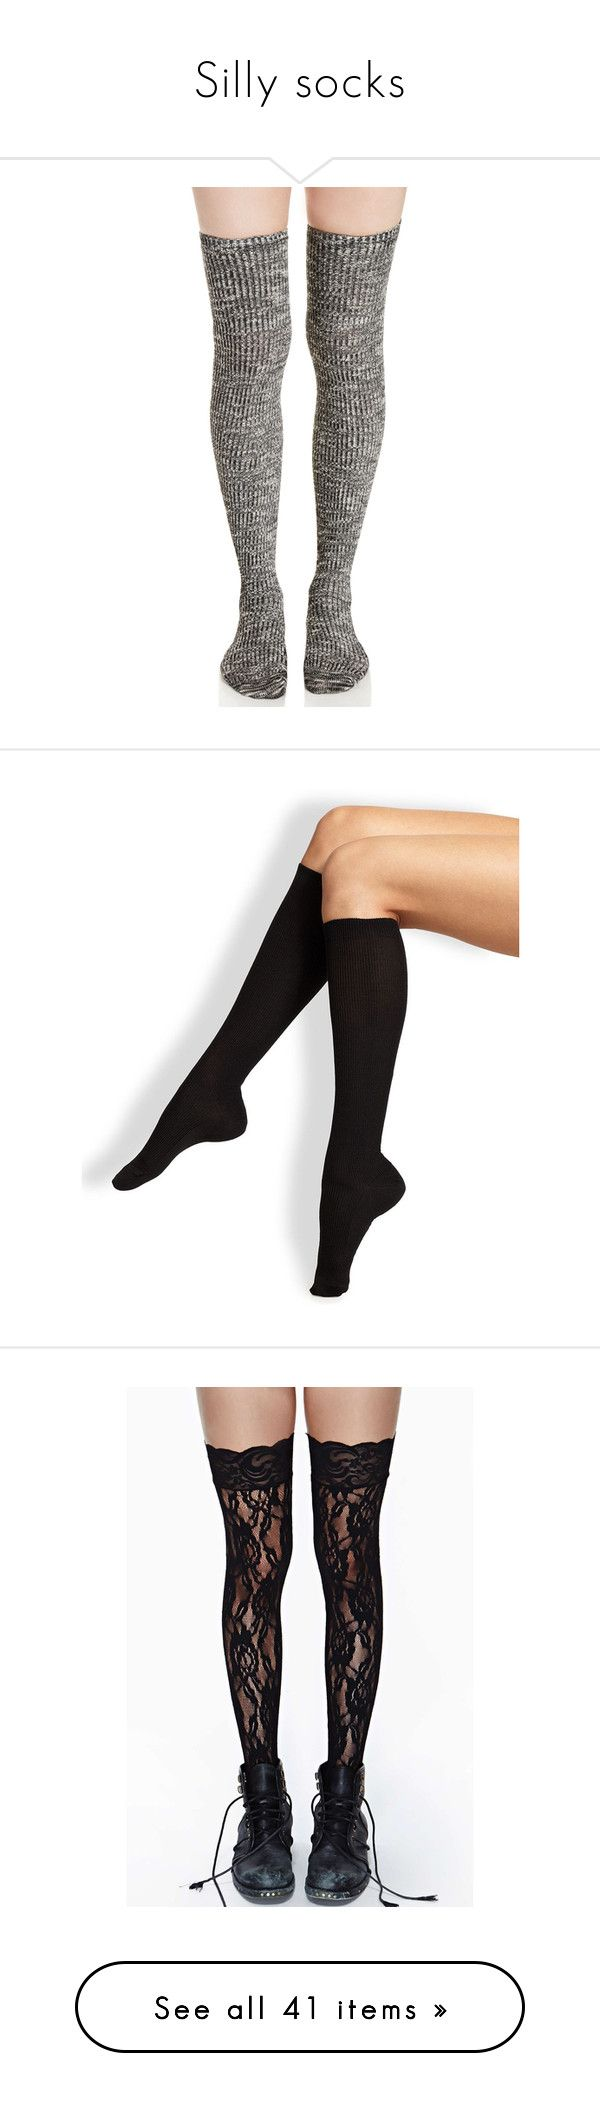 """""""Silly socks"""" by areyouacrow ❤ liked on Polyvore featuring intimates, hosiery, socks, accessories, thigh high knit socks, knit socks, thigh high socks, thigh high hosiery, tights and tie-dye socks"""